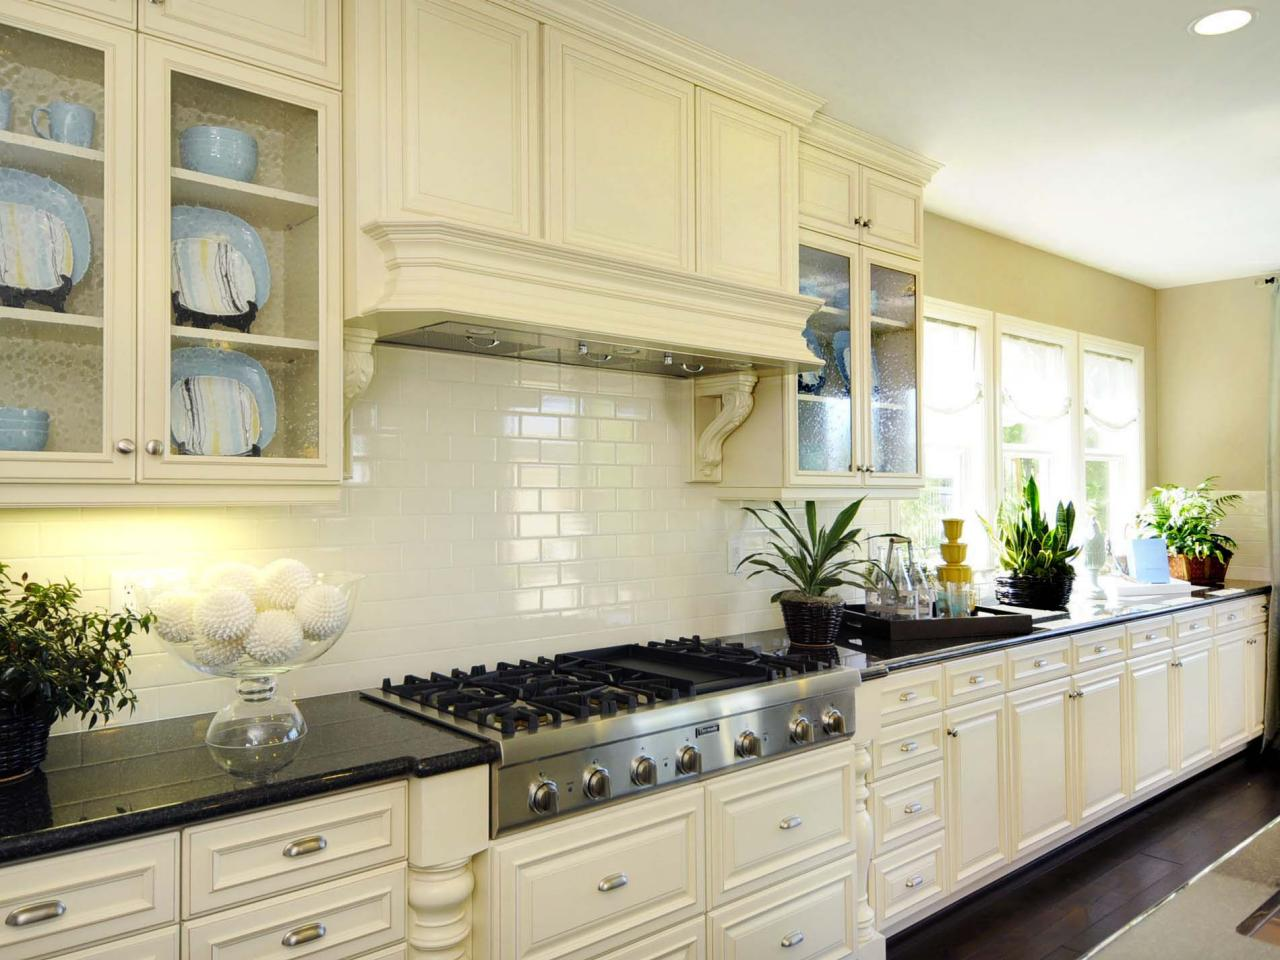 Picking a Kitchen Backsplash – Subway Tile Colors Kitchen